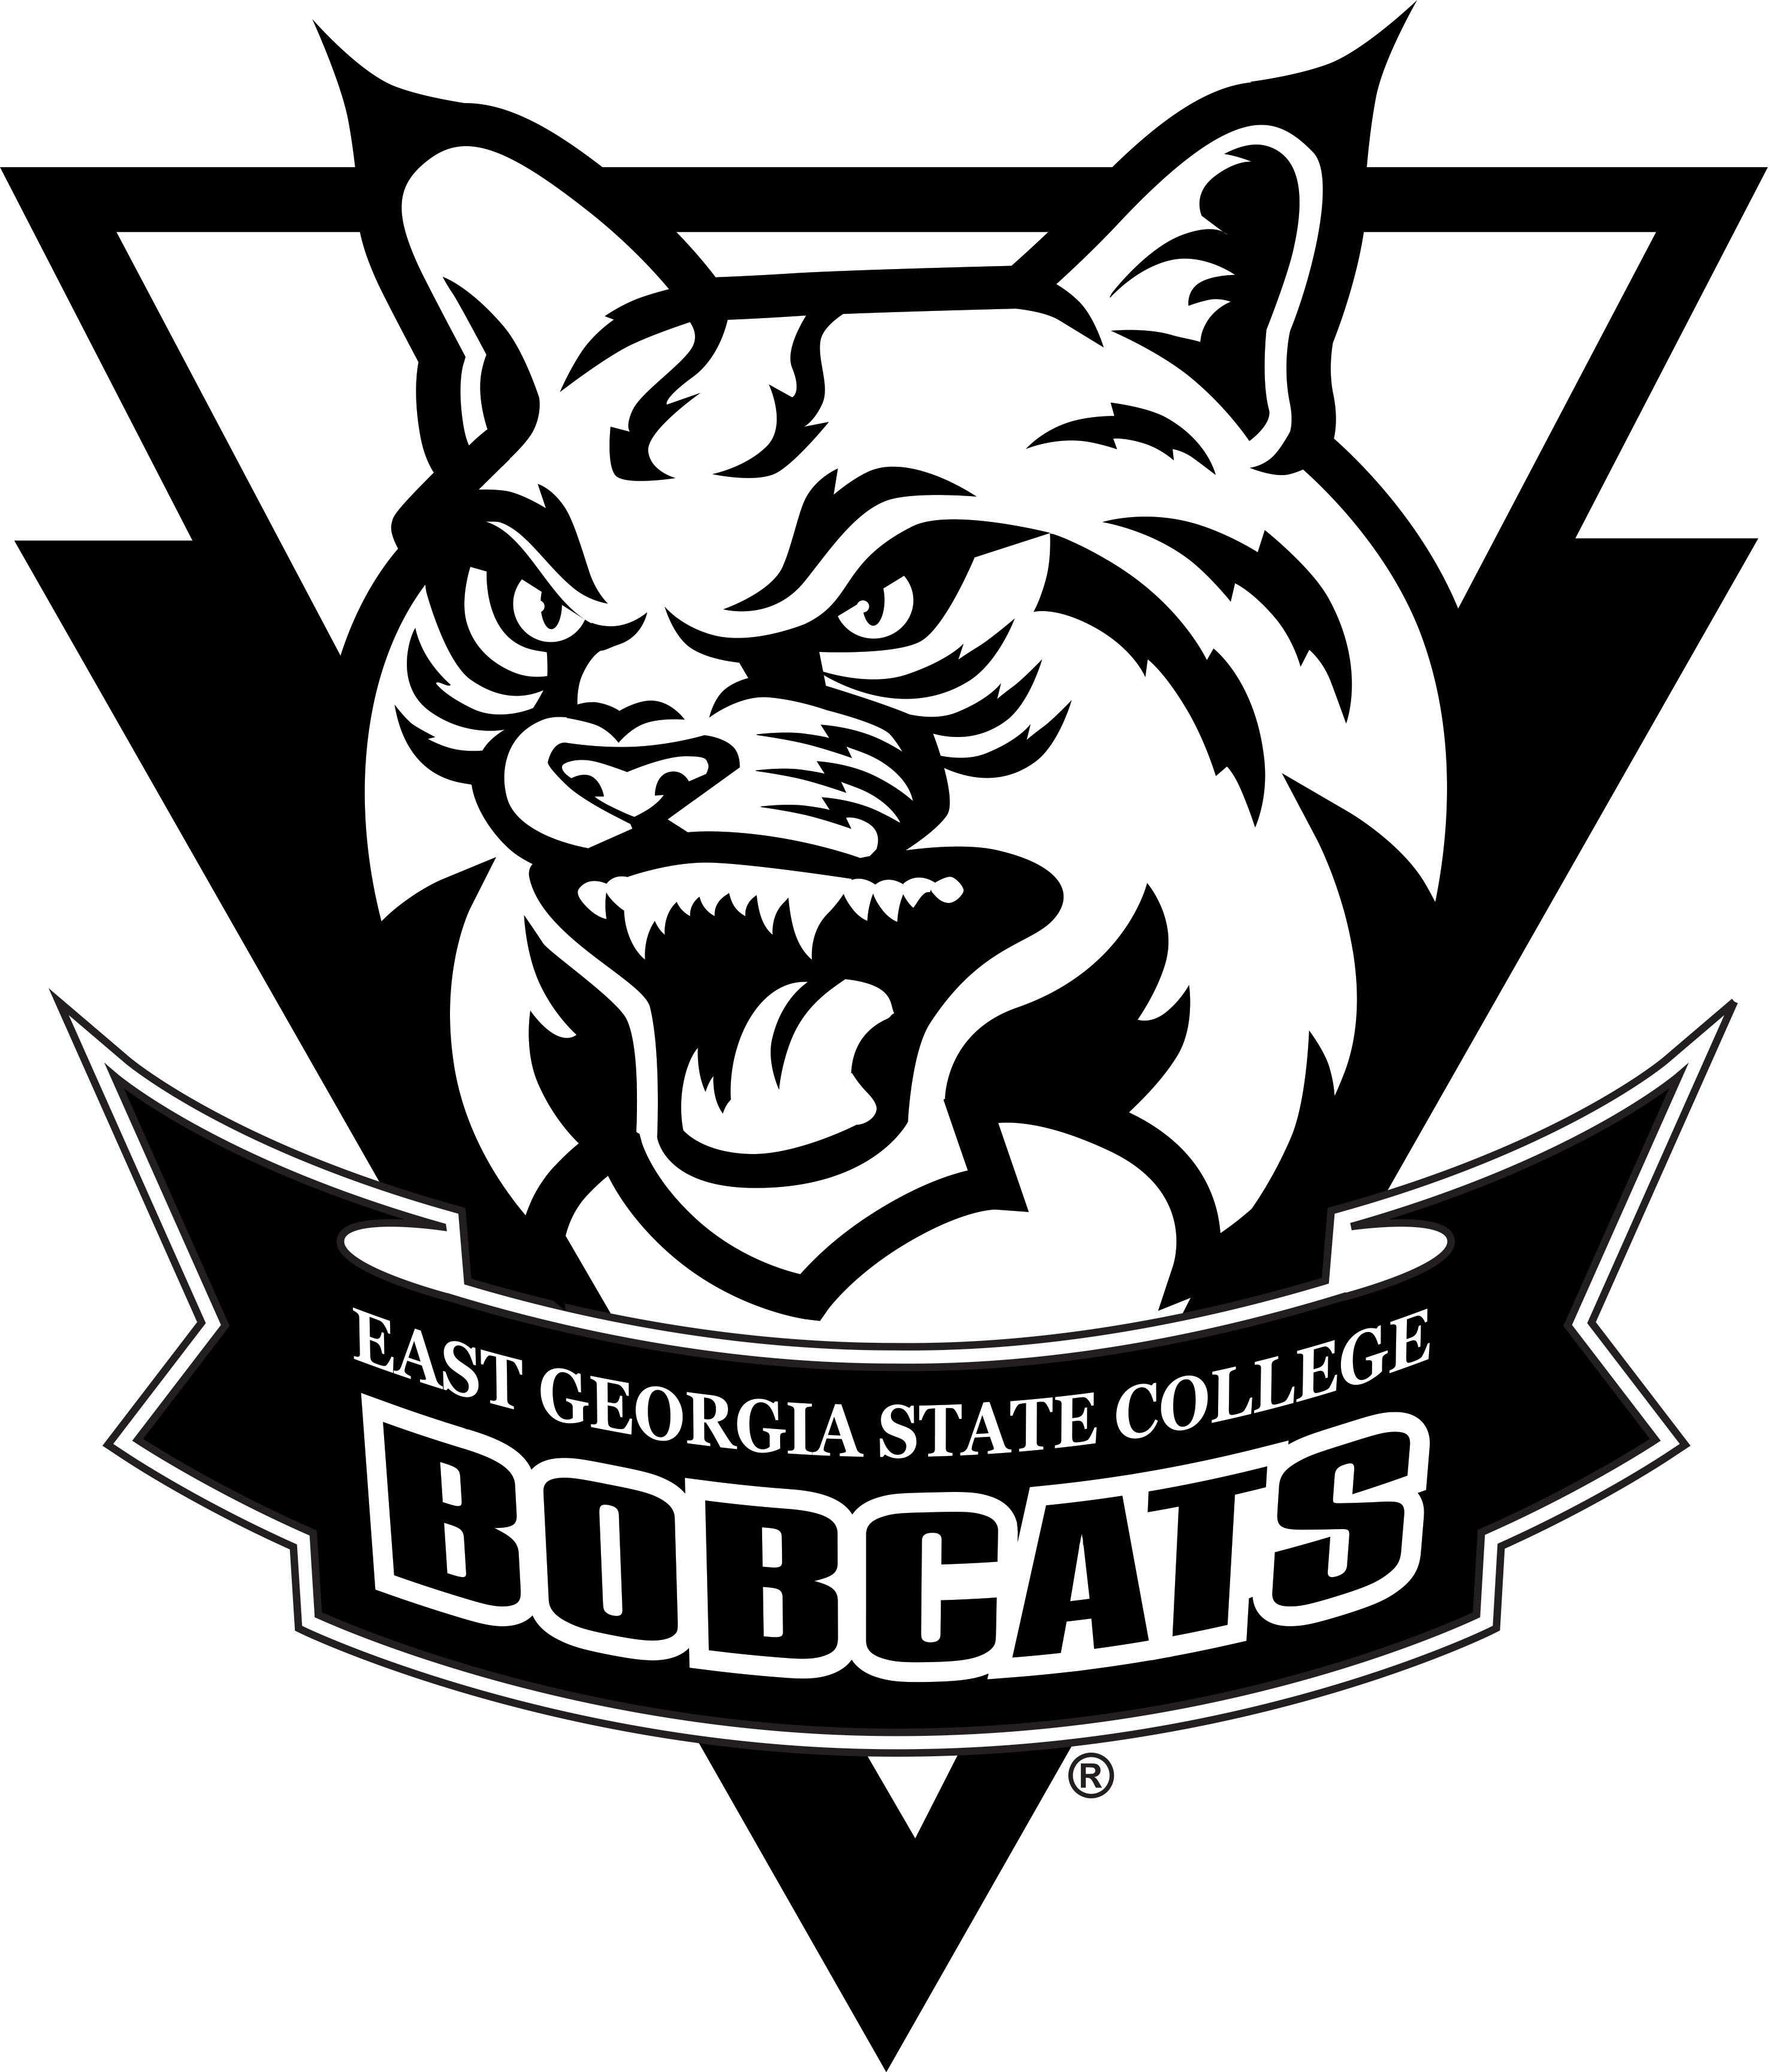 east georgia state college bobcat png logo #6379